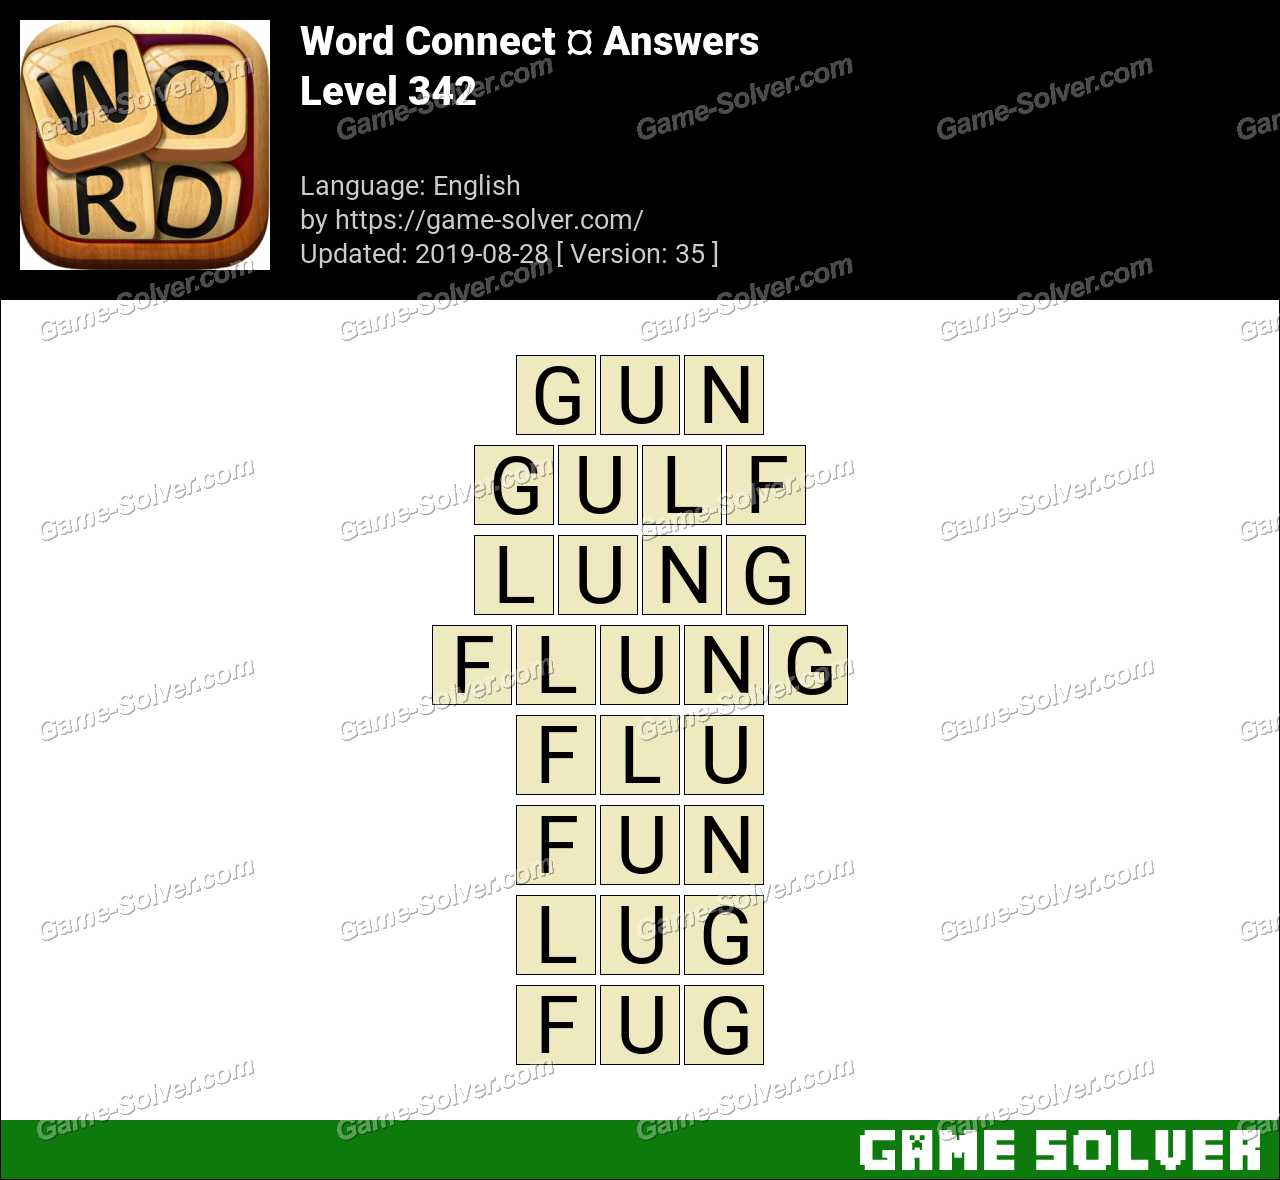 Word Connect Level 342 Answers